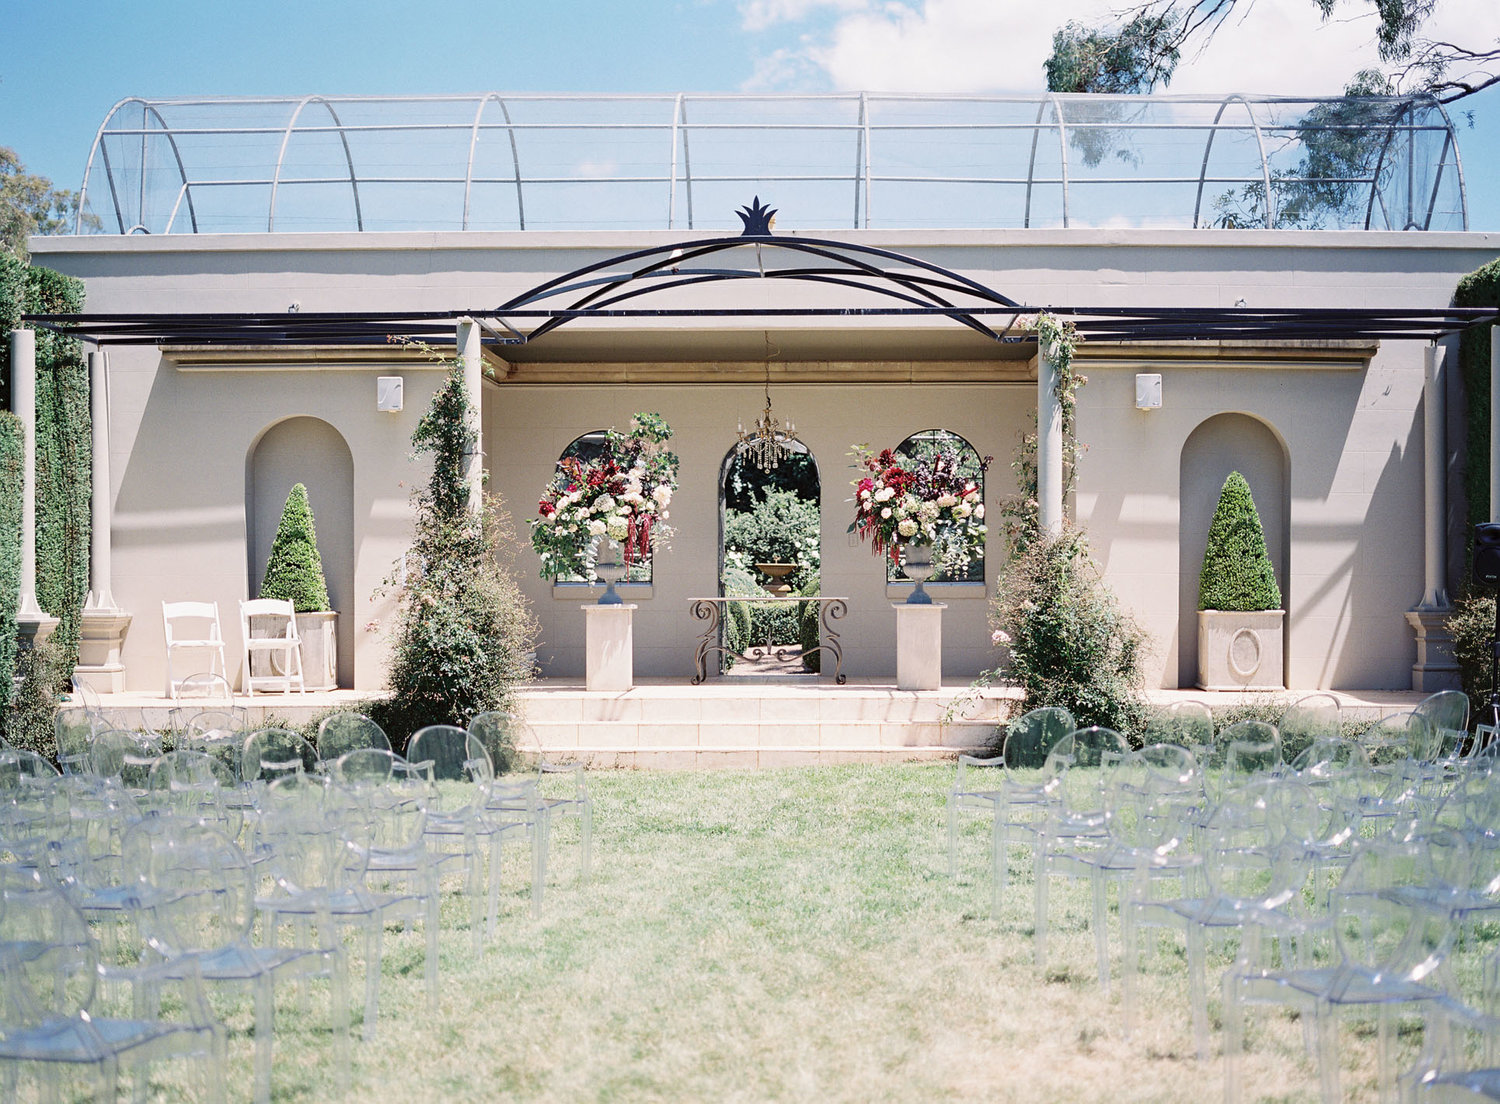 Hopewood House - Kylie & Gabriel - Wedding Day Gallery - Bowral Southern Highlands - ceremony and reception - shot 5 - The Outdoor Chapel Avairy & Bridal Lawn - Ceremony .jpeg